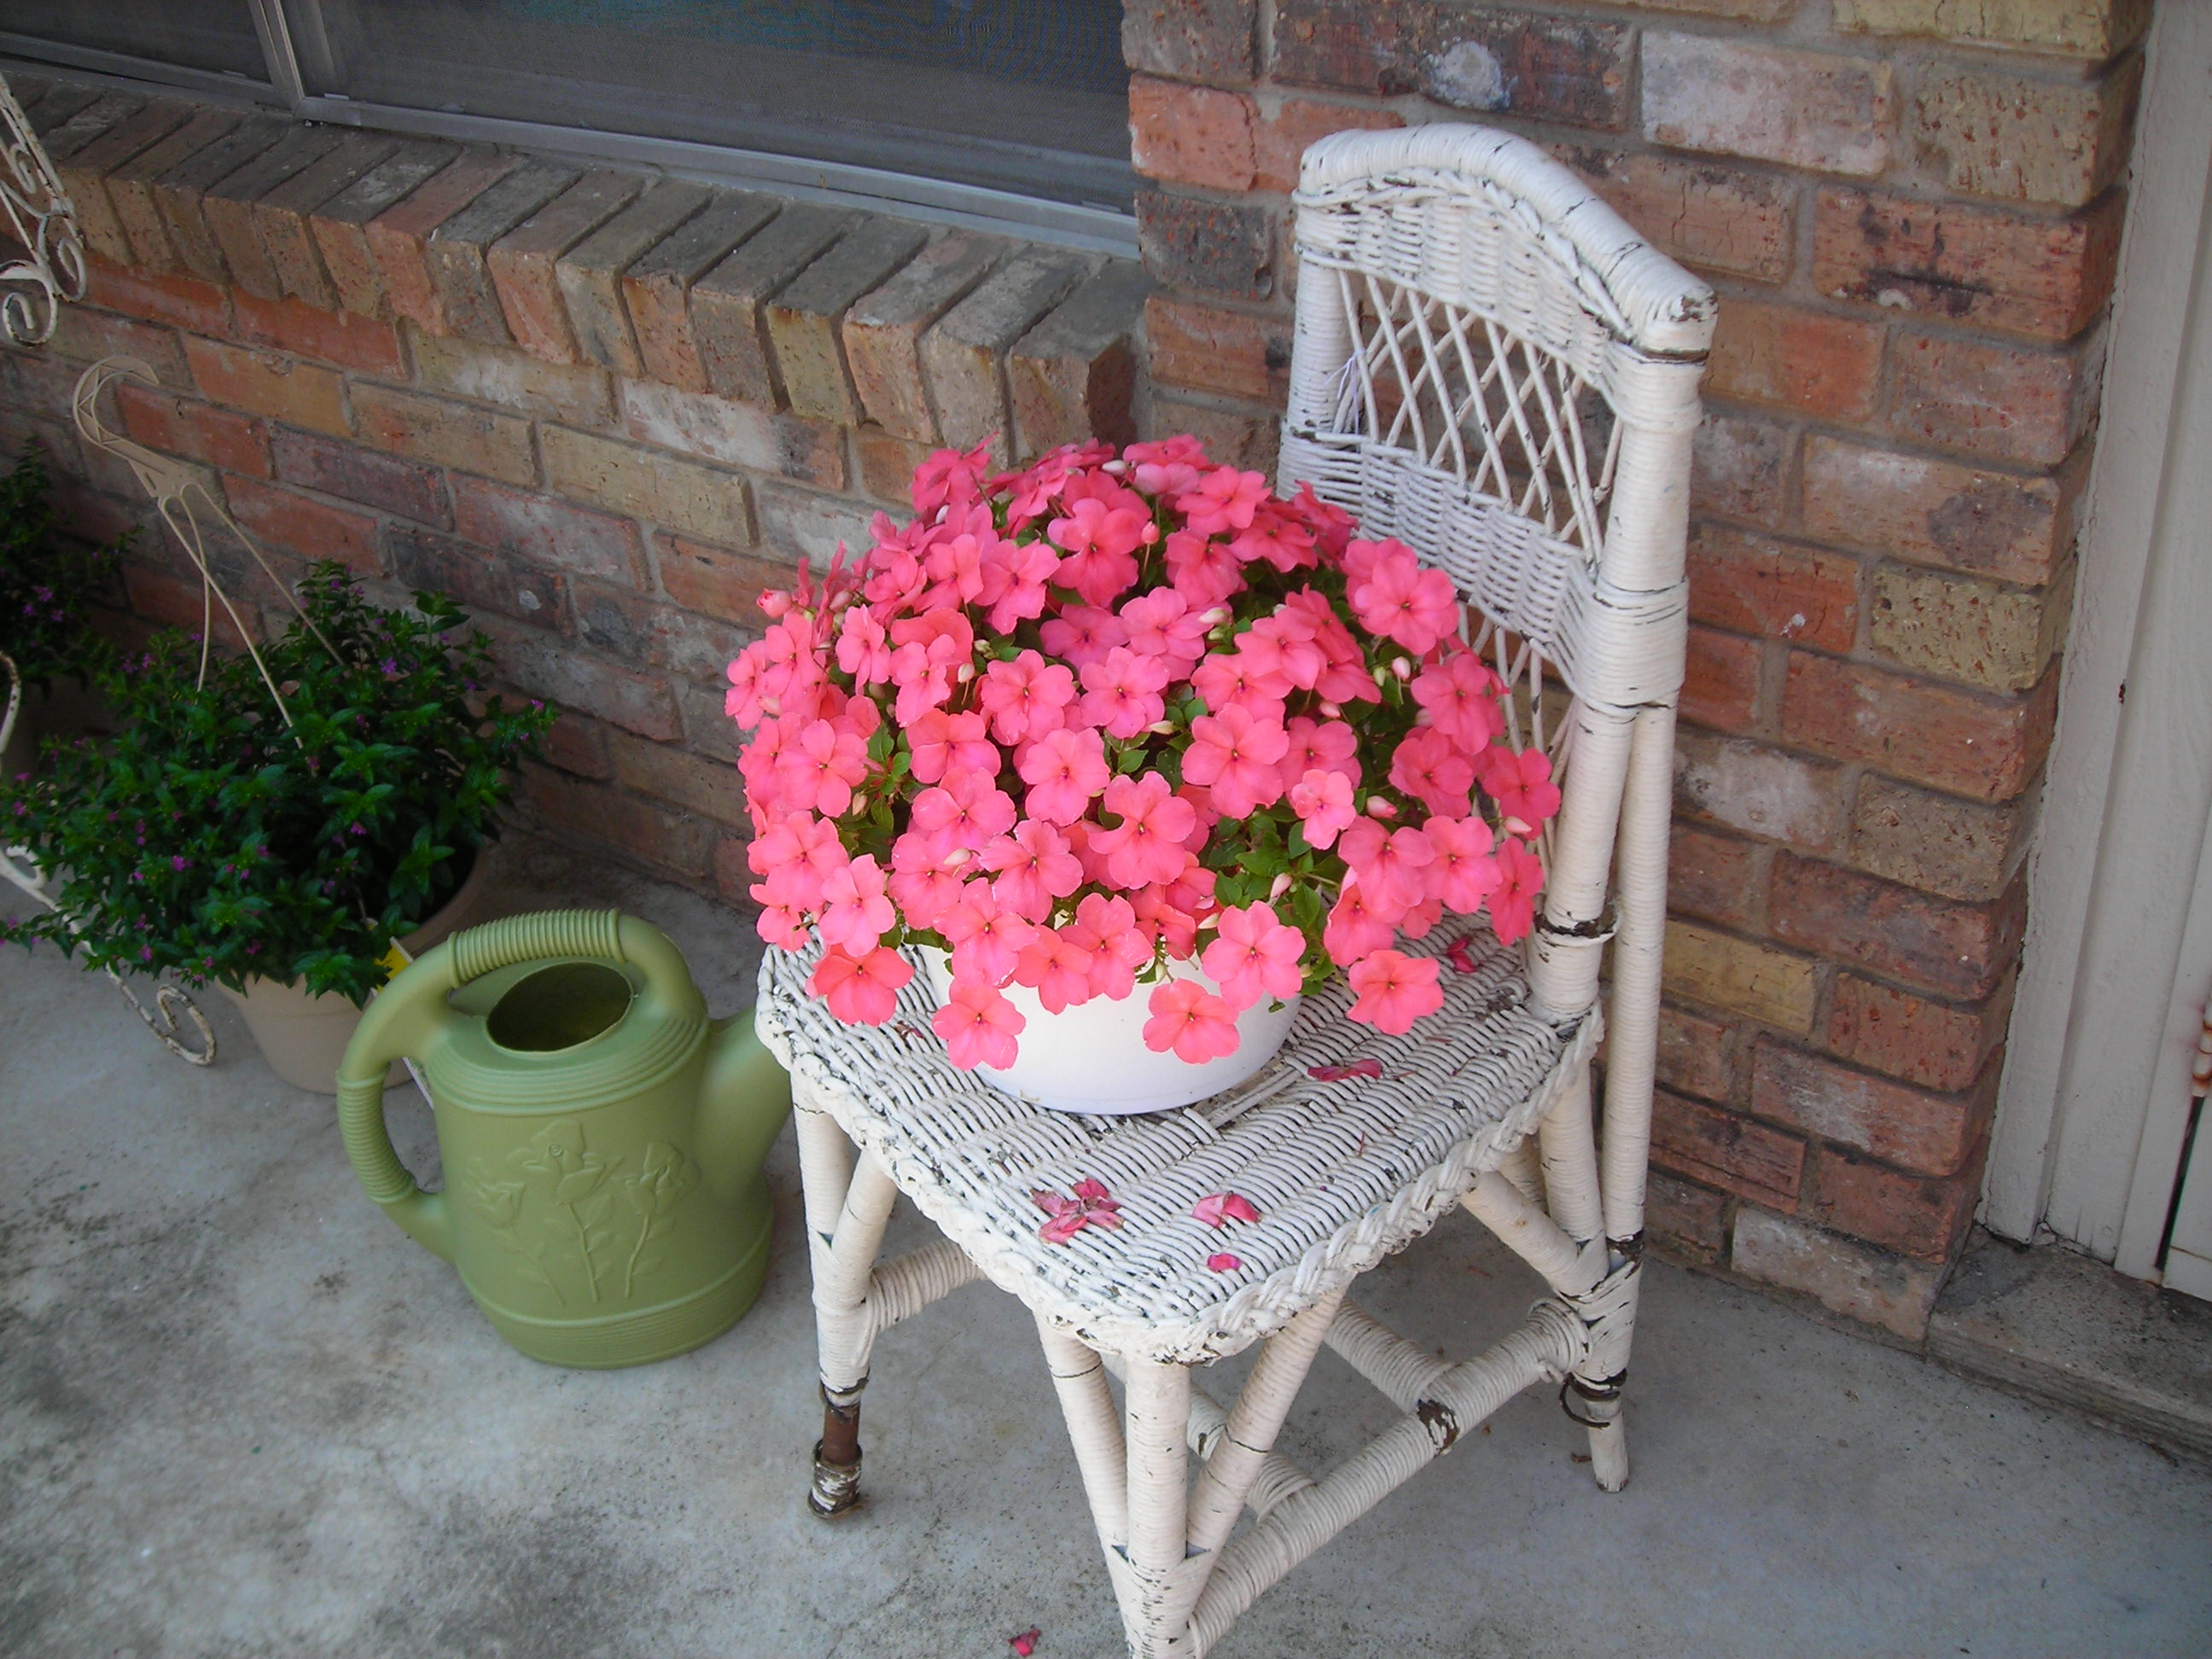 the little white wicker chair (from sue's) is perfect for my flowers!